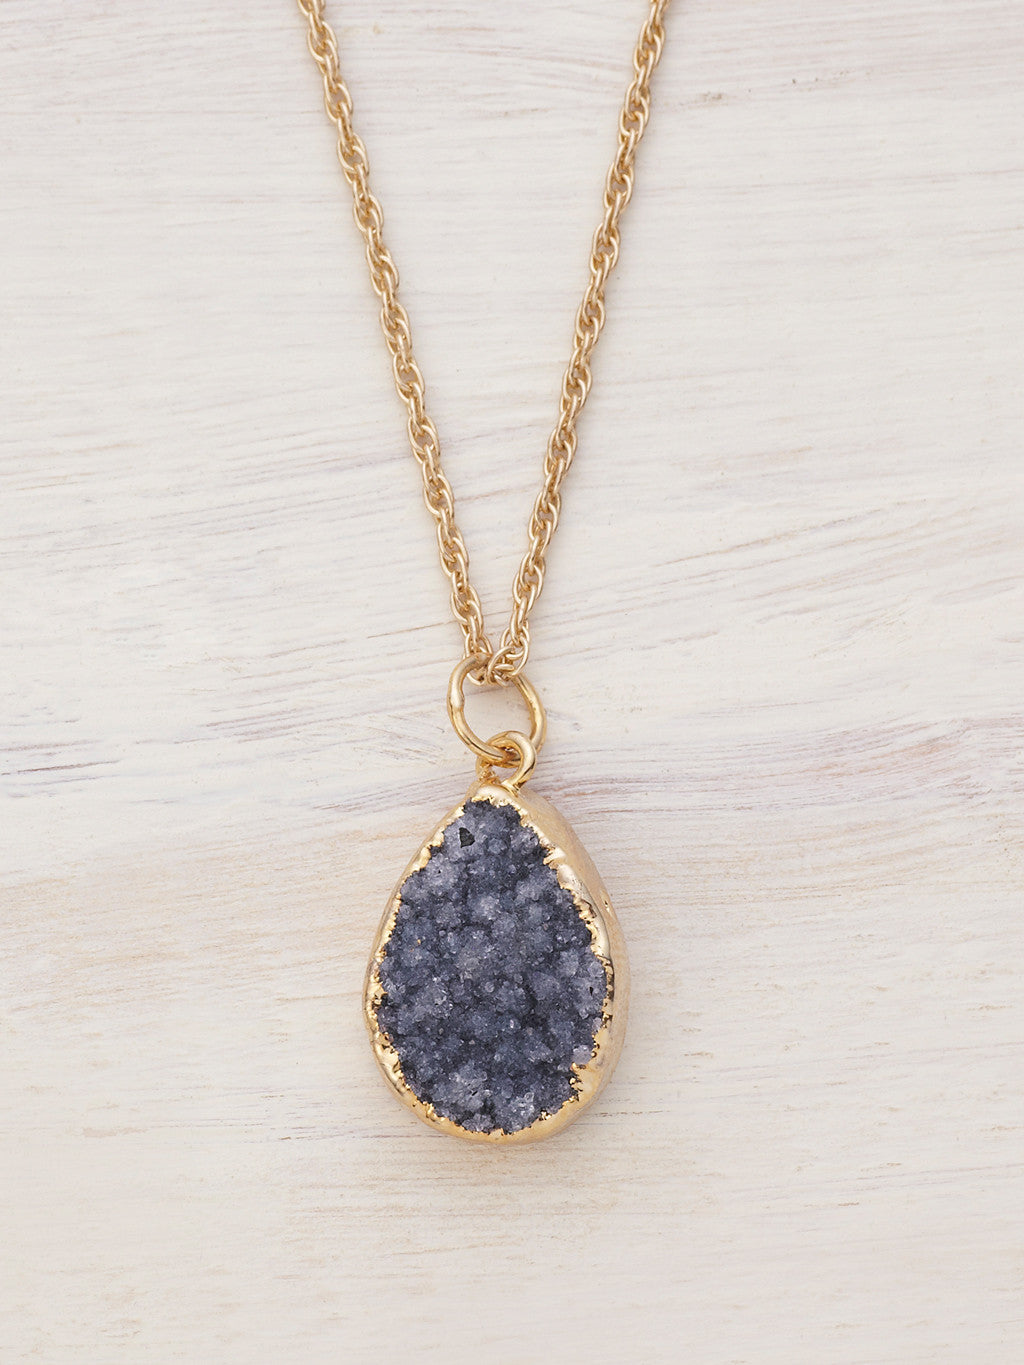 Small Druzy Teardrop Necklace - Dark Shadow